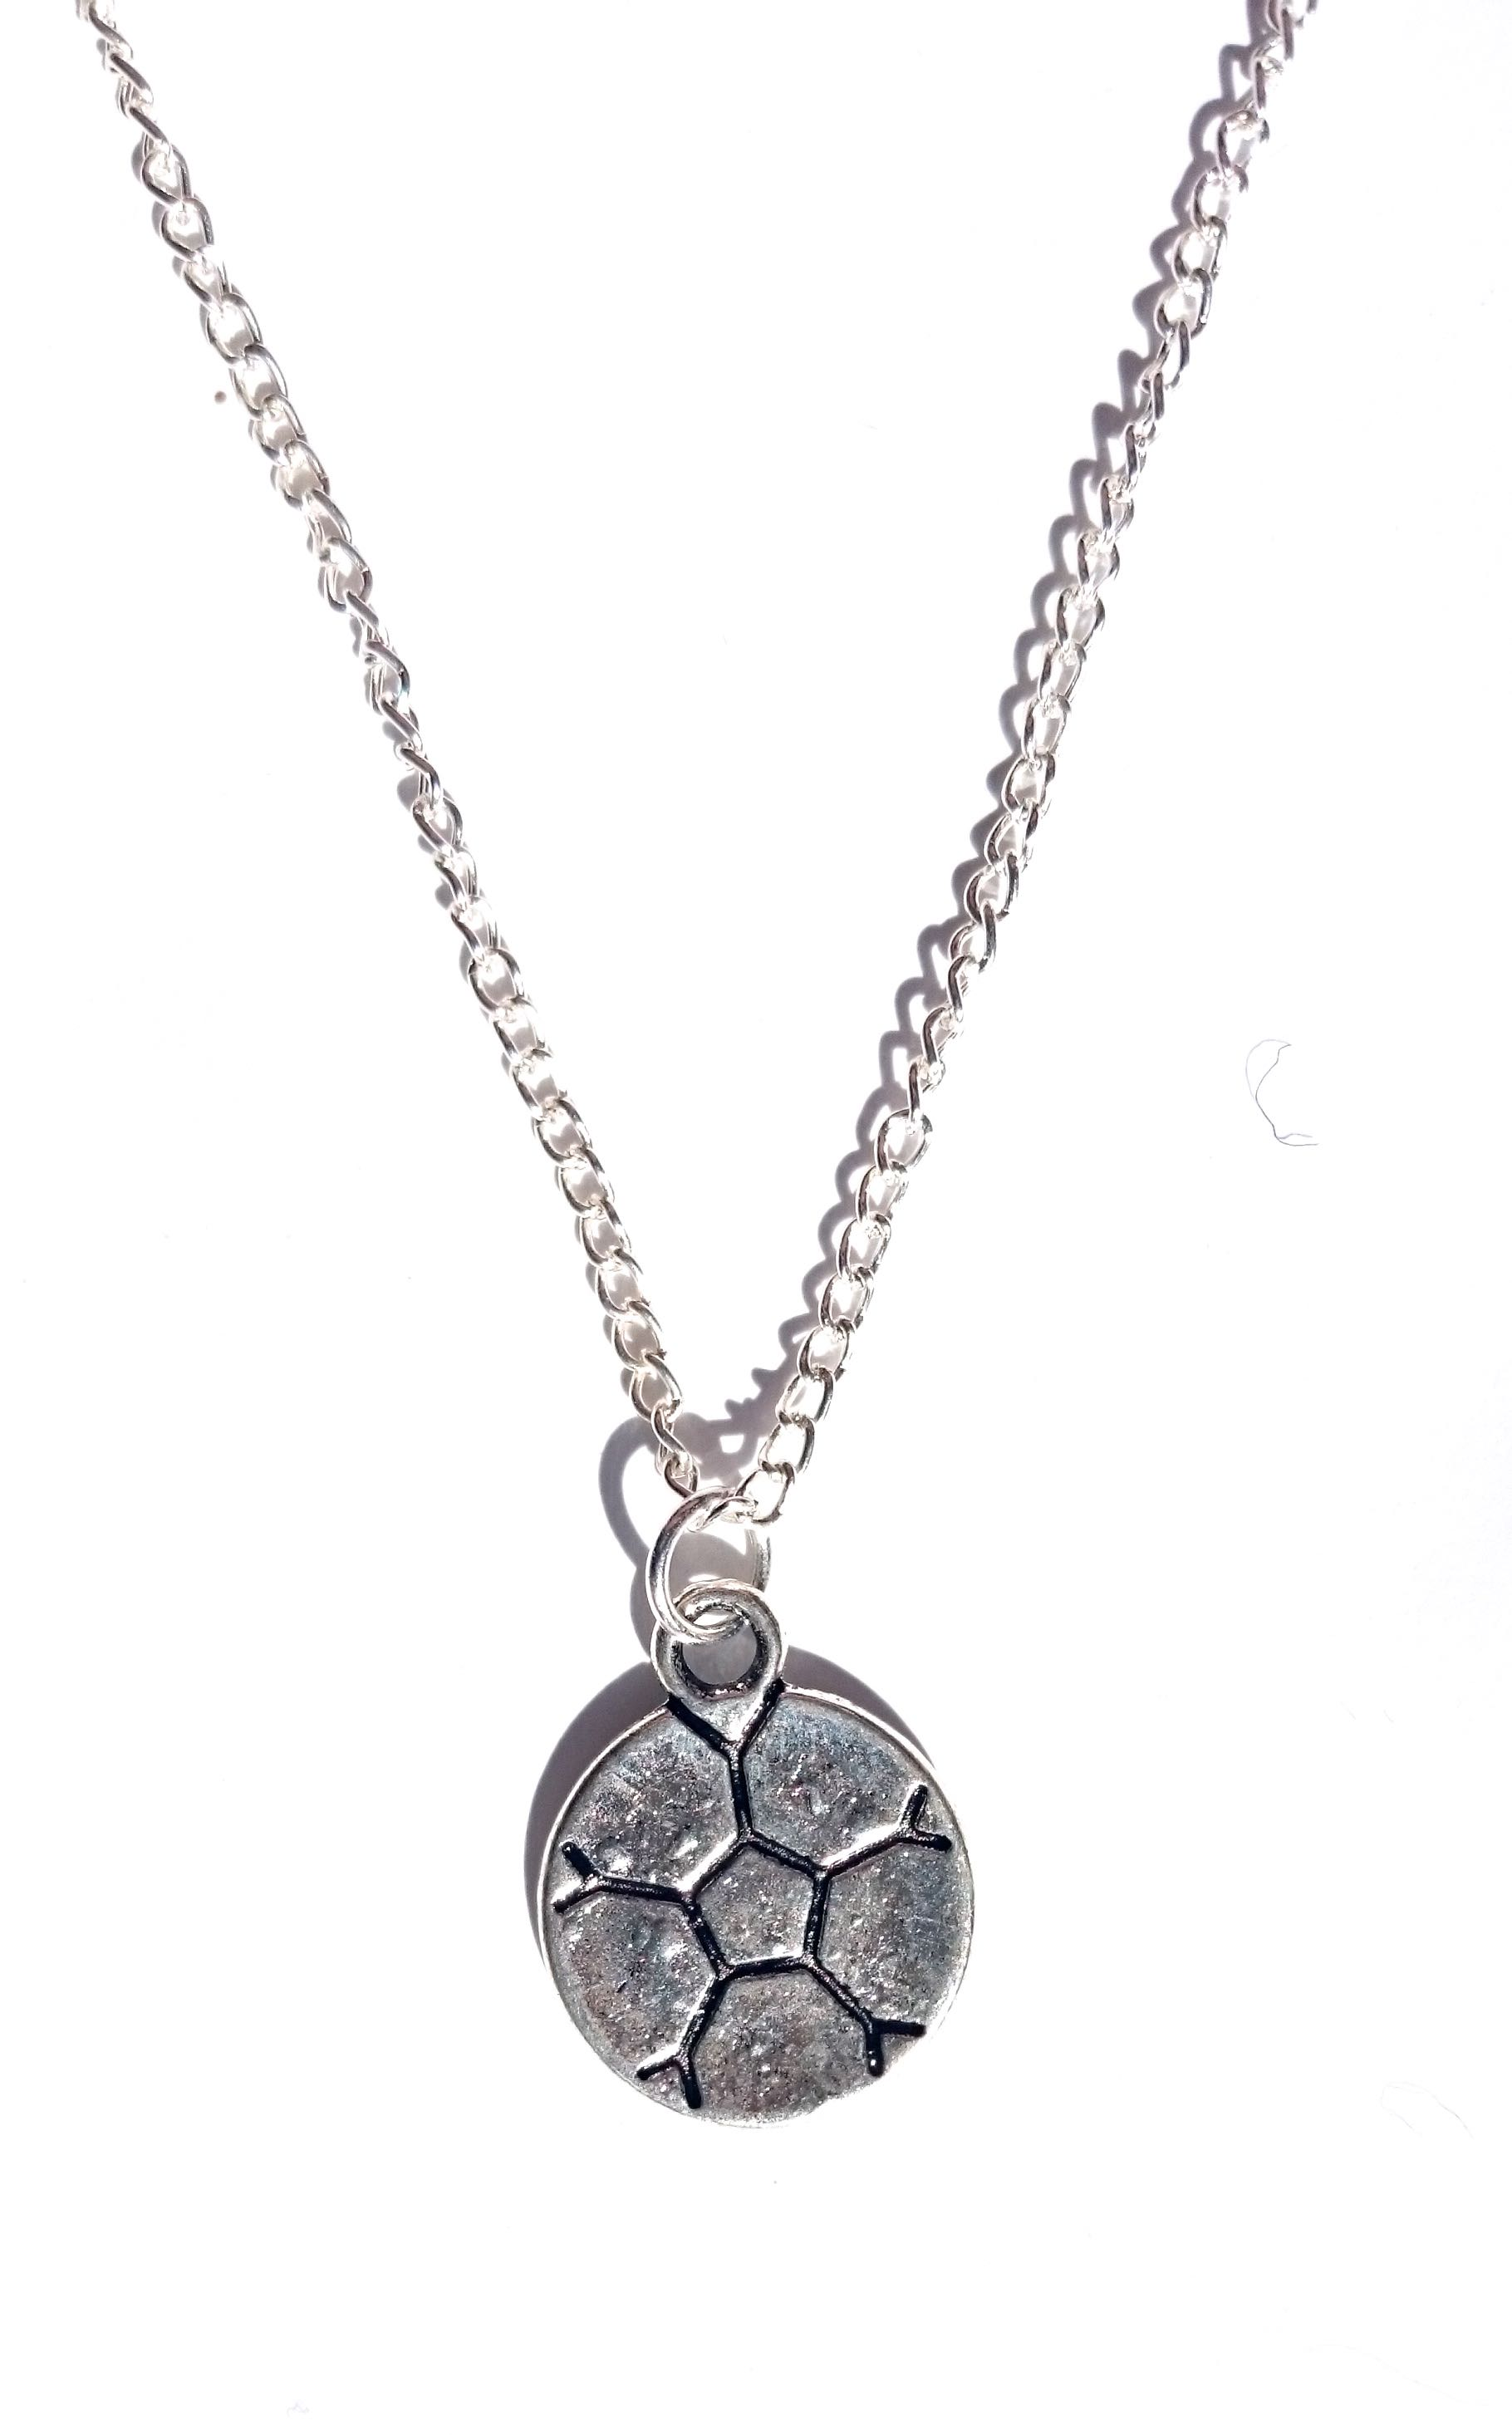 possible are chain included necklace pendant football with god stainless christian all steel medal sport product things